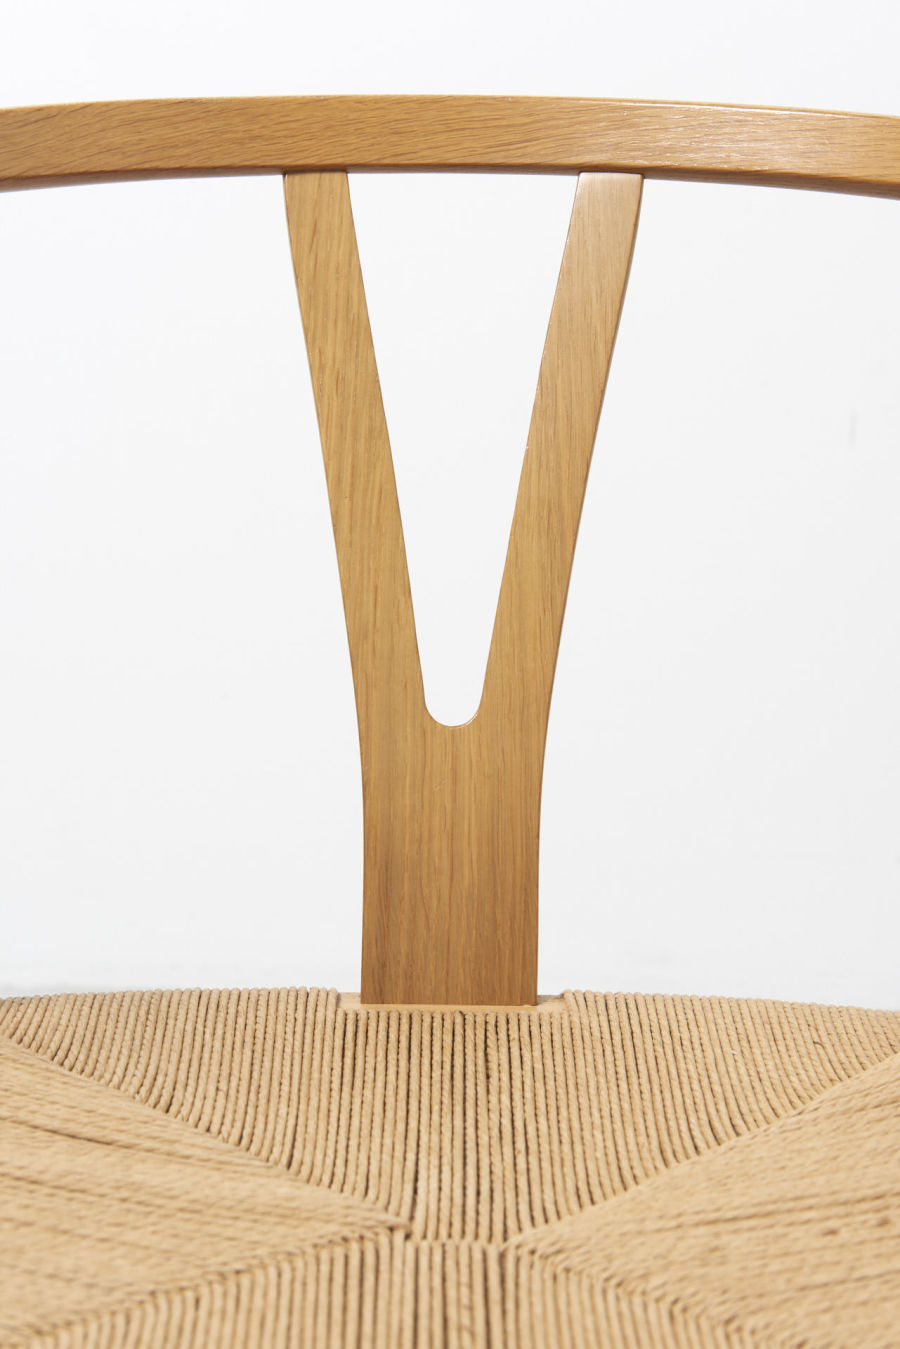 modestfurniture-vintage-1957-wishbone-chairs-hans-wegner09